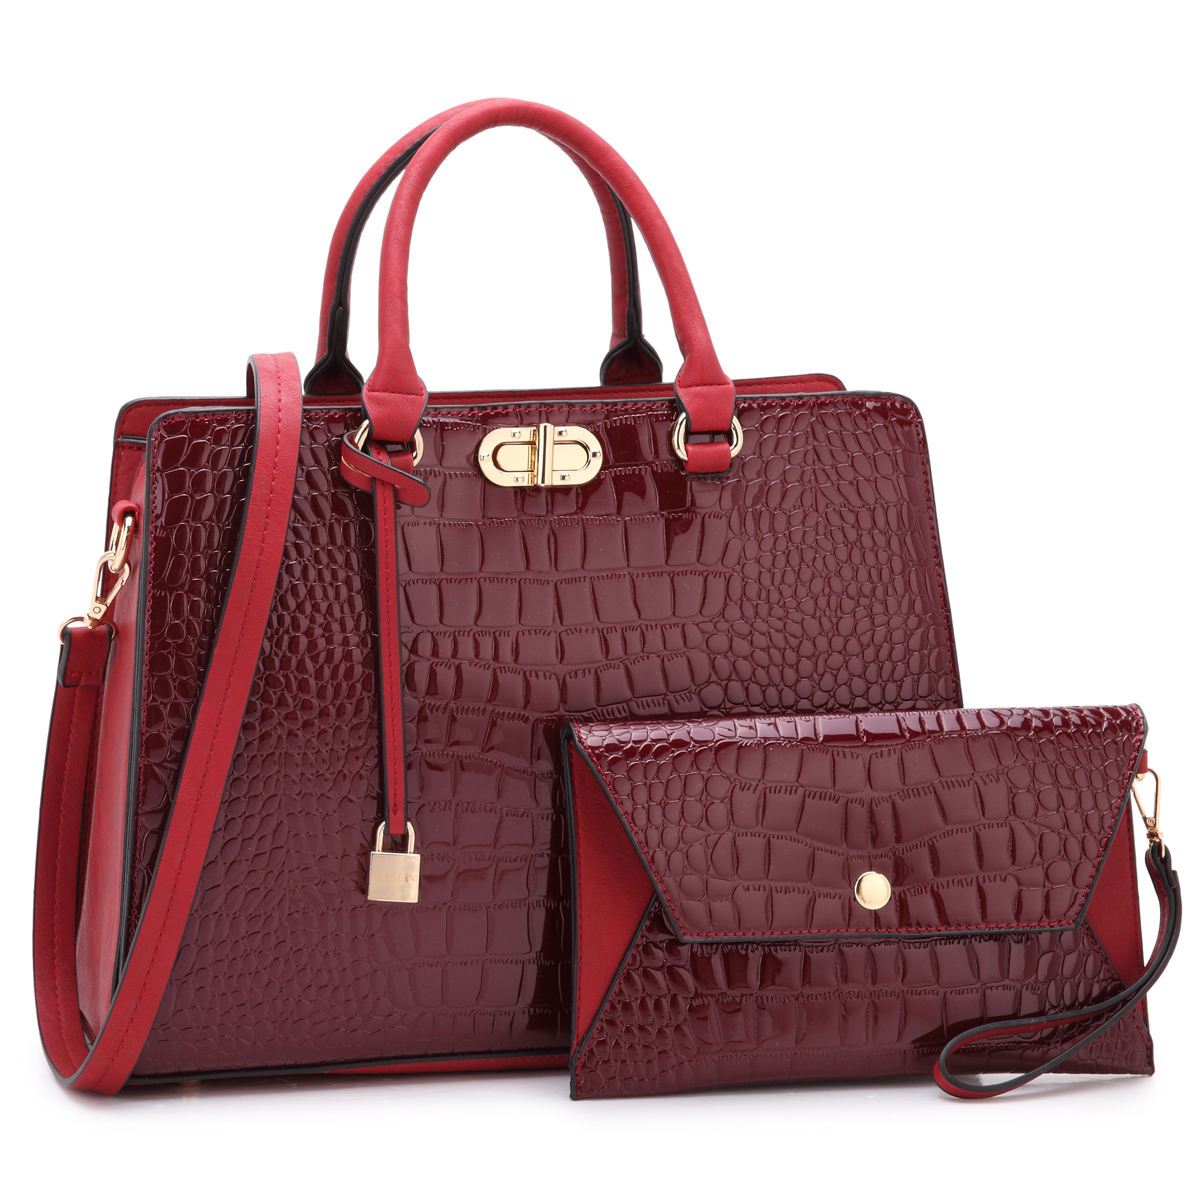 Dasein Croco Leather Satchel with Twist Lock  Front Compartment, Dangling Padlock deco, and with Matching Wristlet